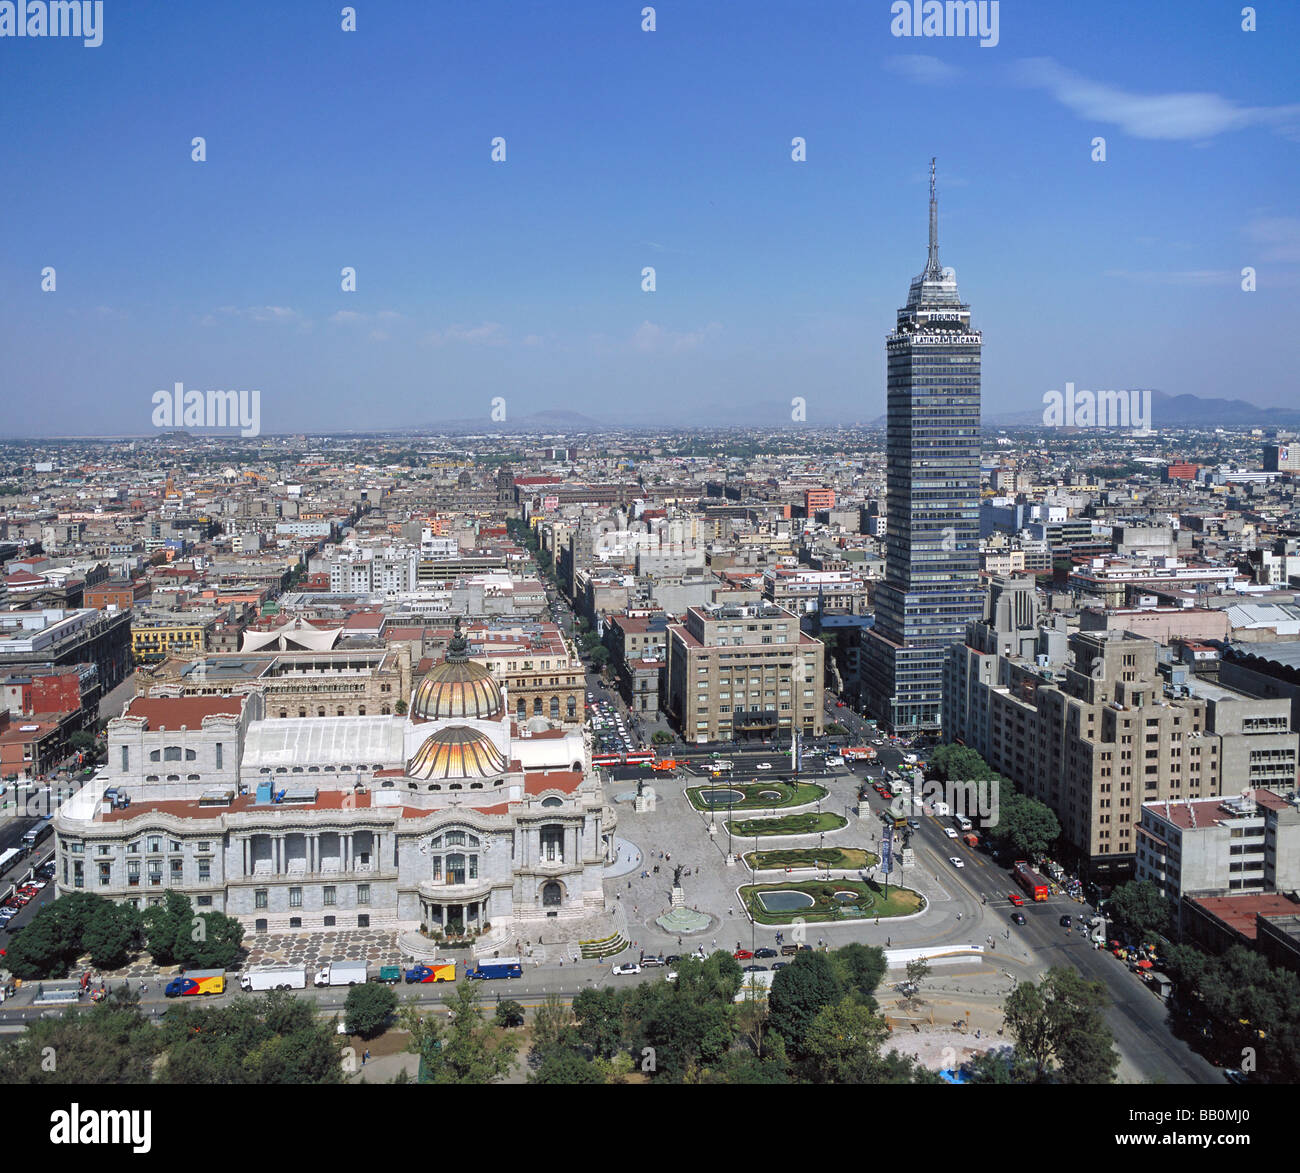 aerial above Belles Artes museum Torre Latino Americano Federal District Mexico City - Stock Image